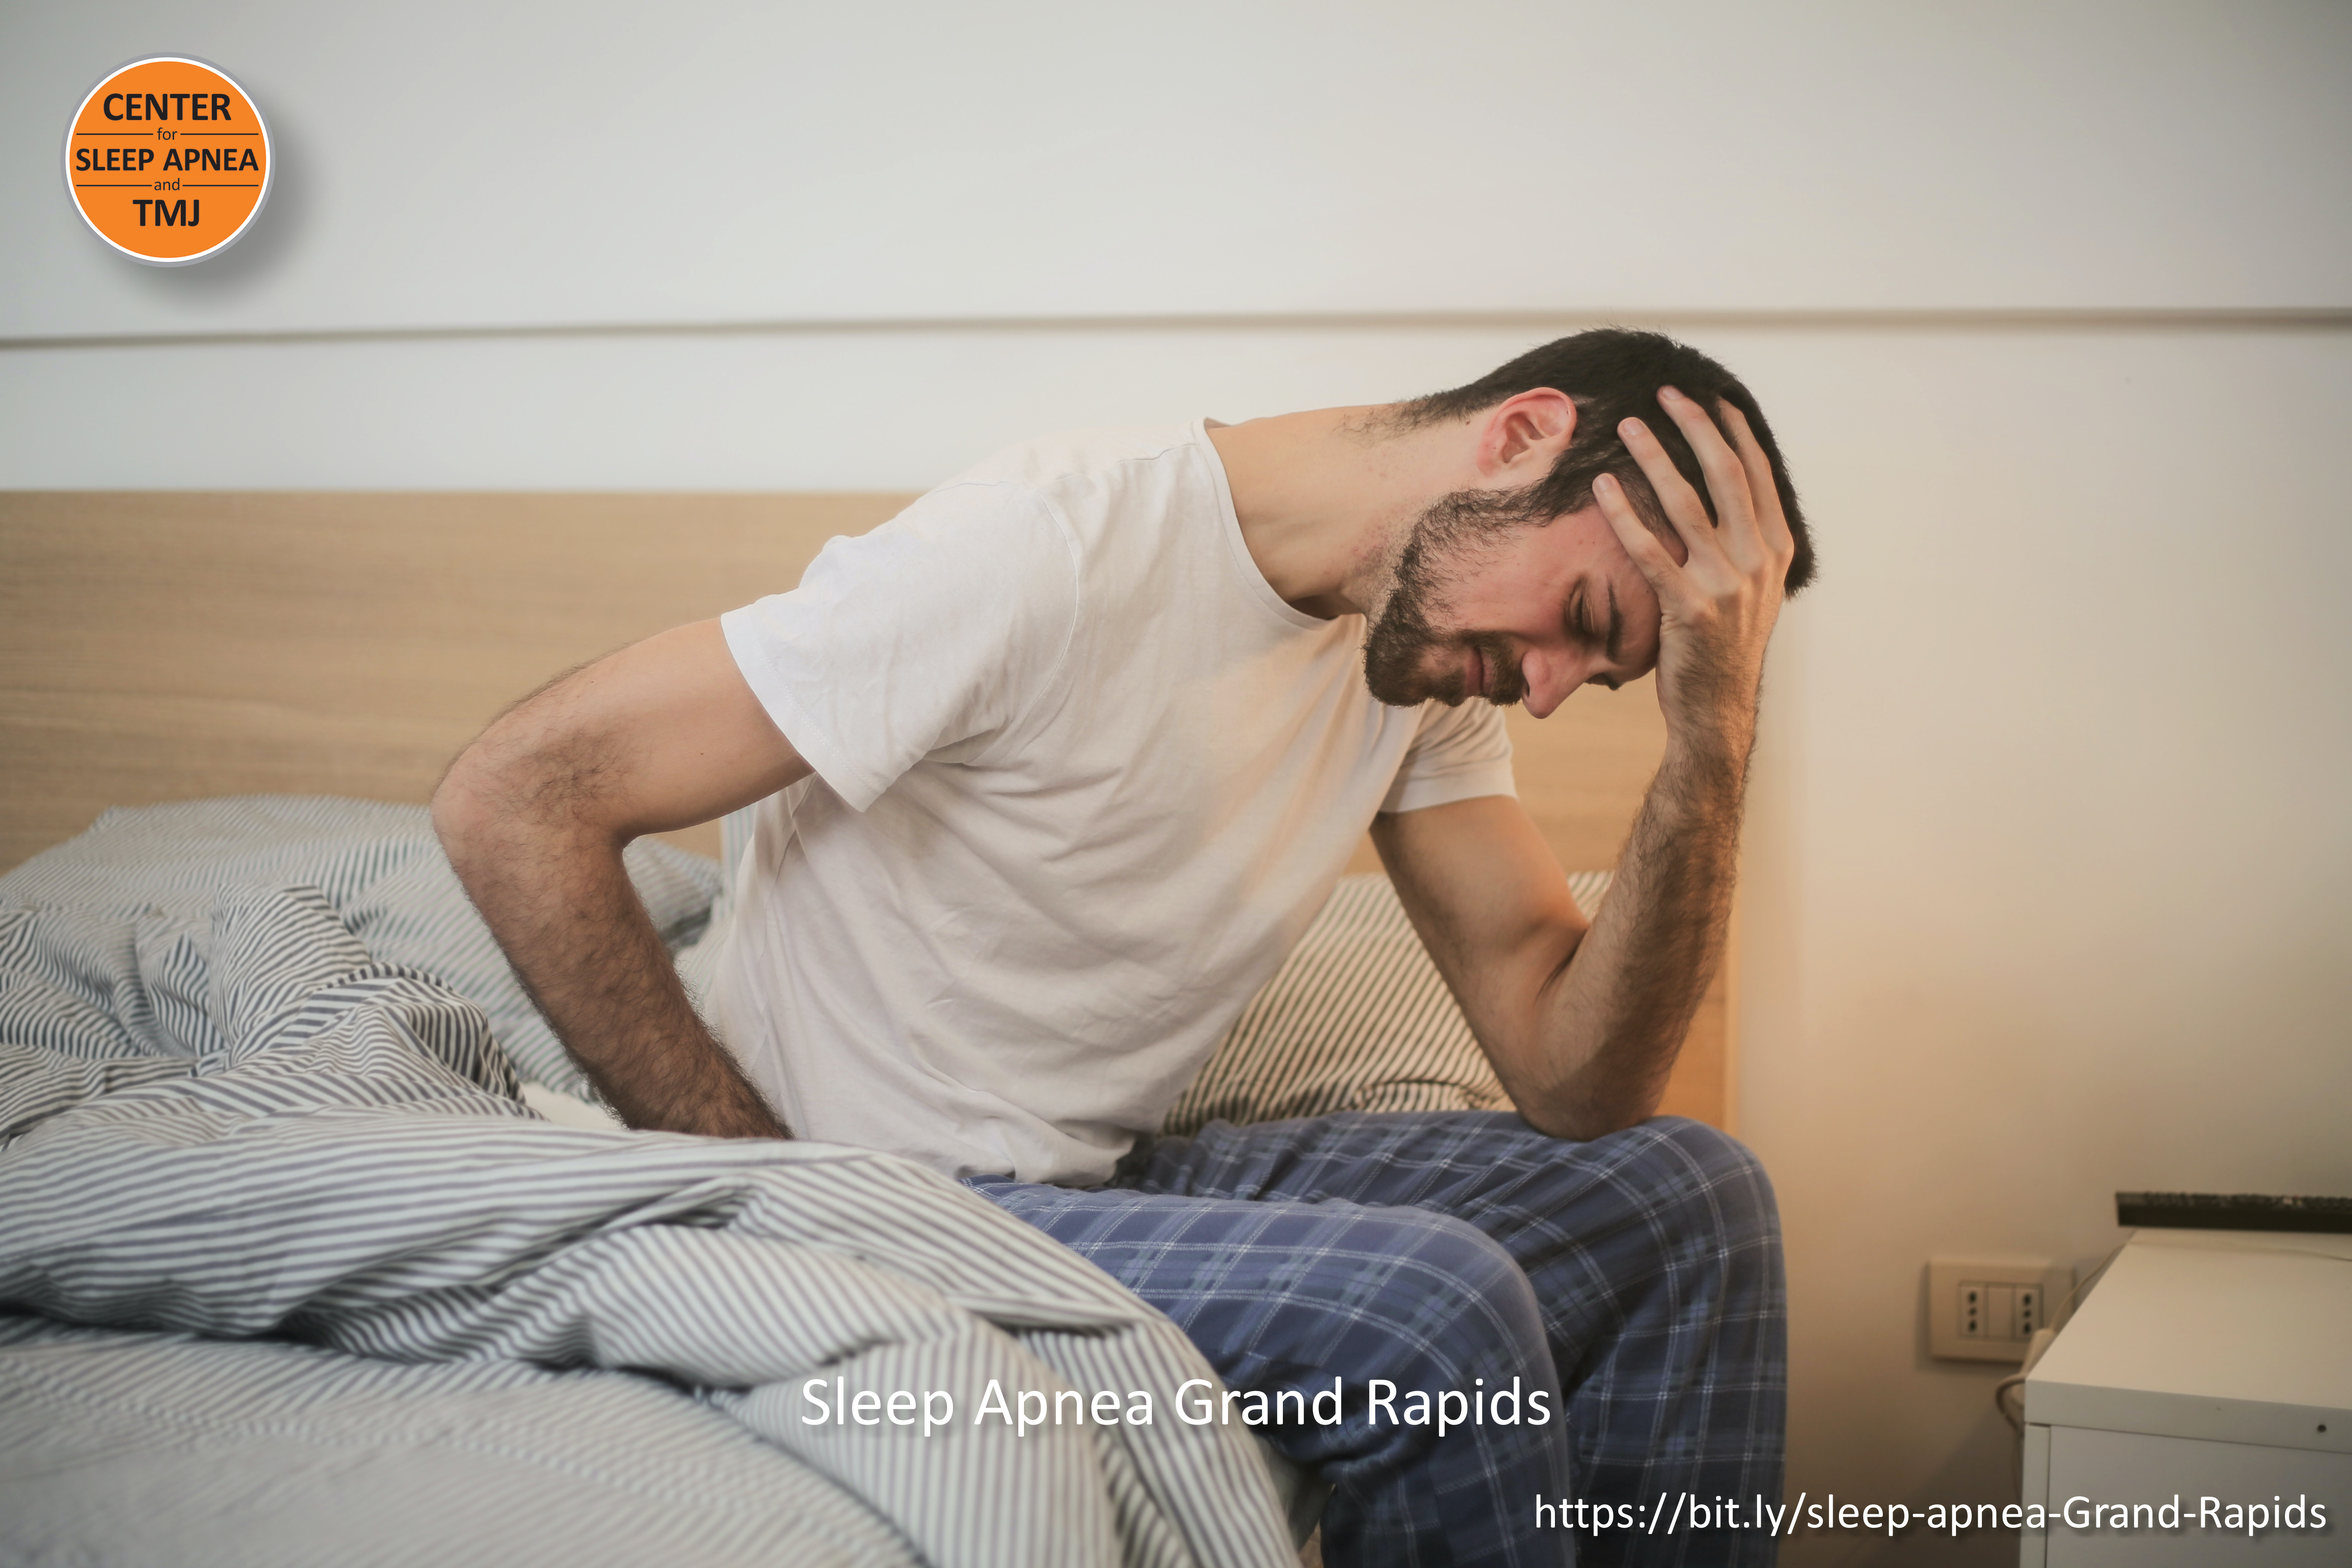 Get sleep and TMJ disorders specialized treatment with the Center for Sleep Apnea and TMJ.